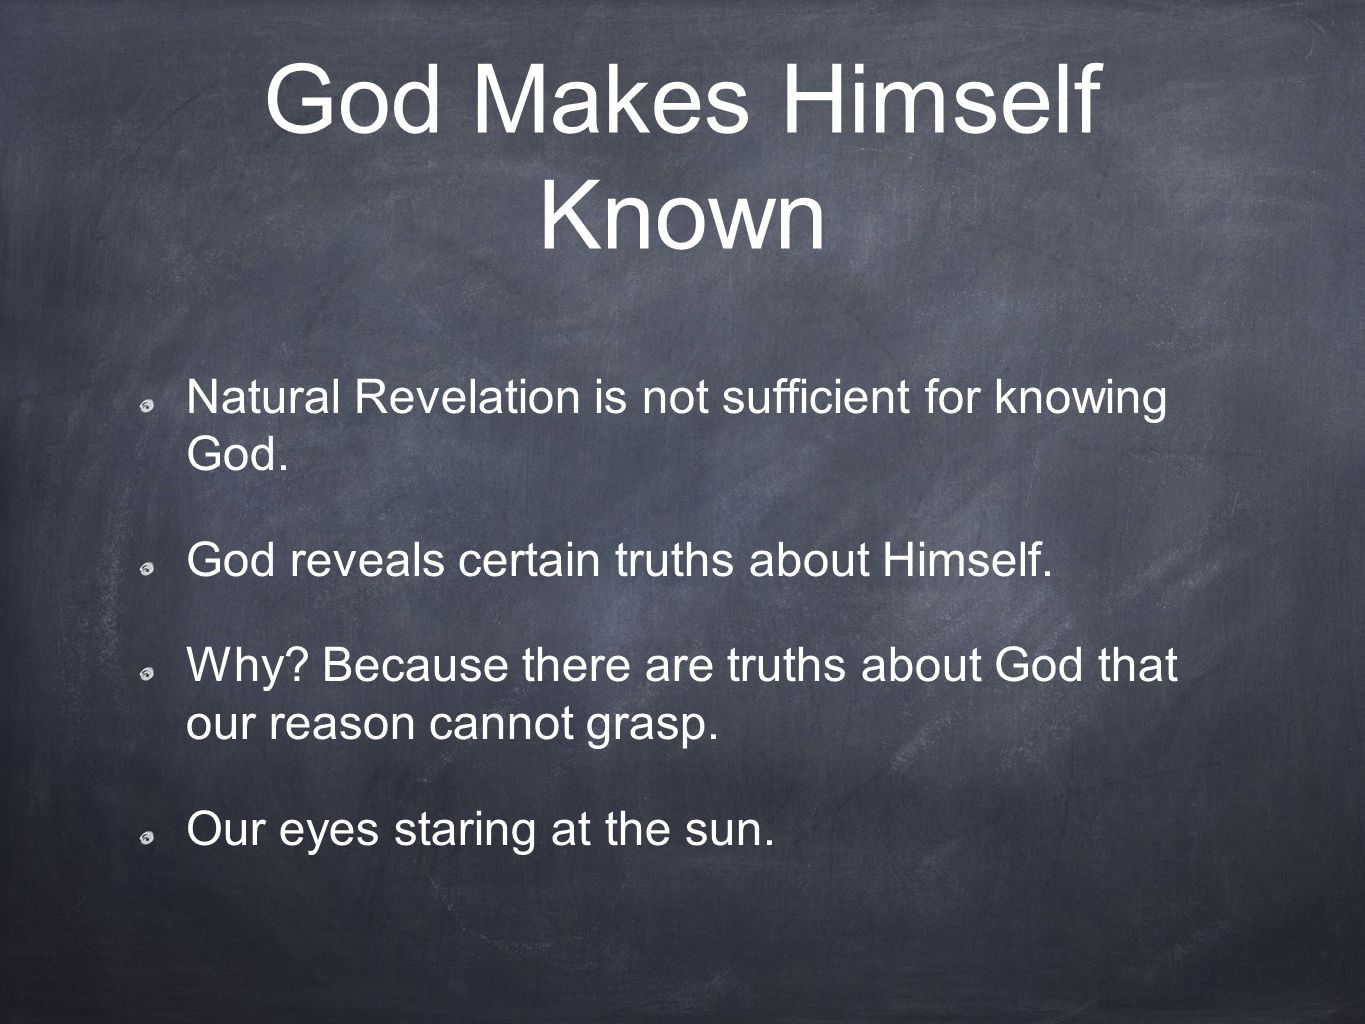 God Makes Himself Known Natural Revelation is not sufficient for knowing God. God reveals certain truths about Himself. Why? Because there are truths